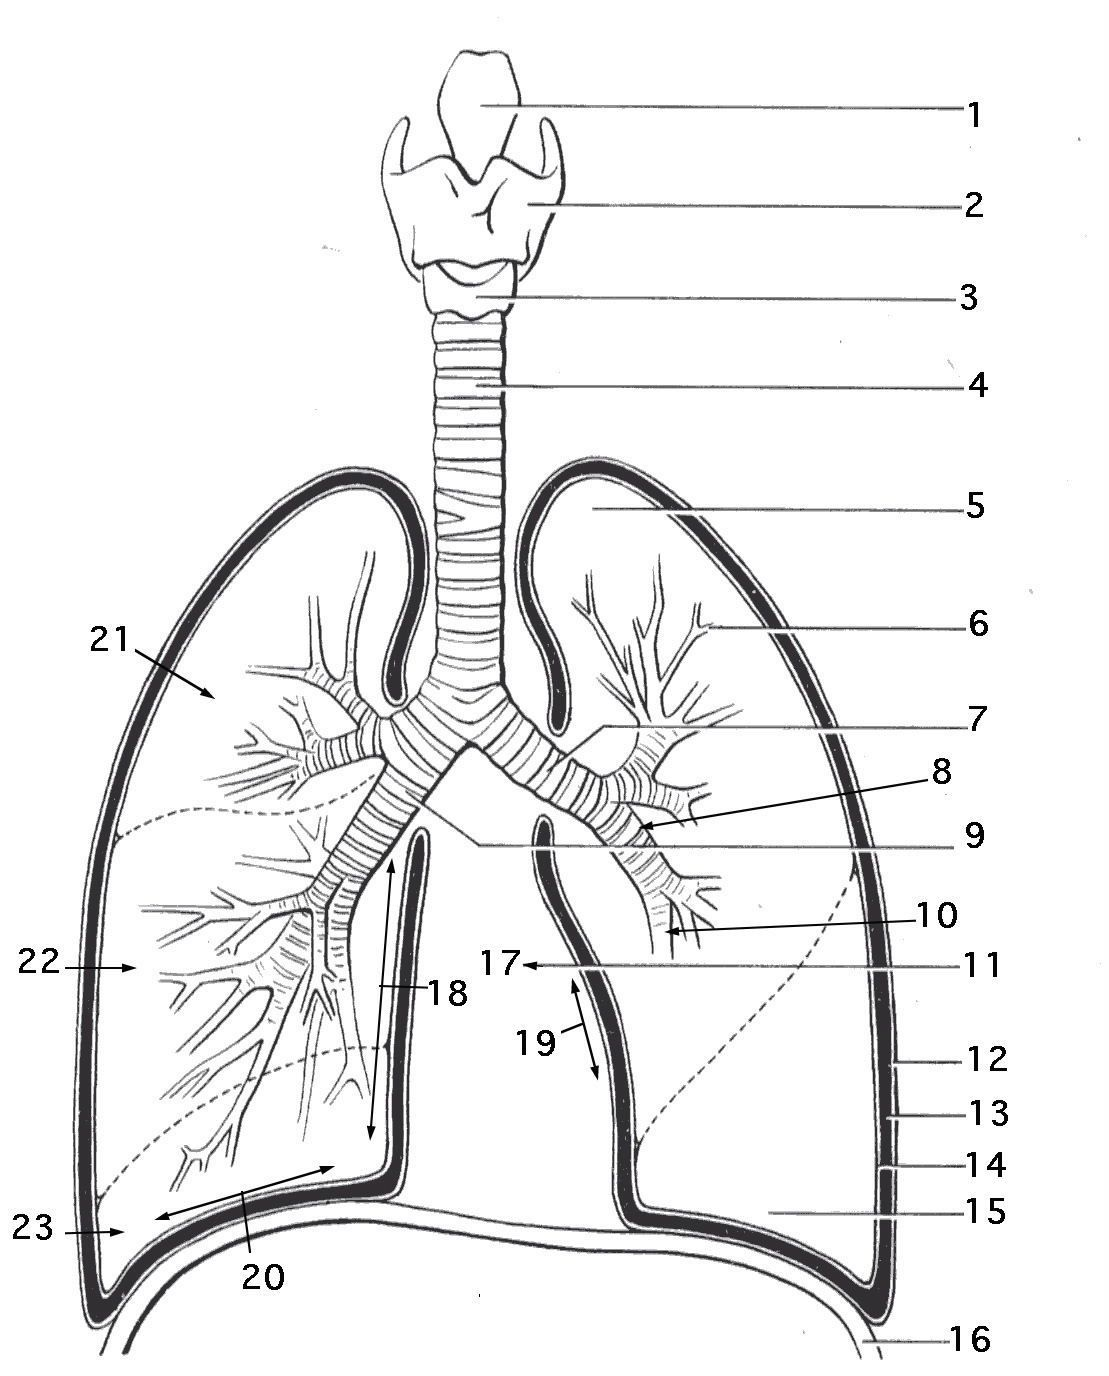 Download or print this amazing coloring page: Lungs